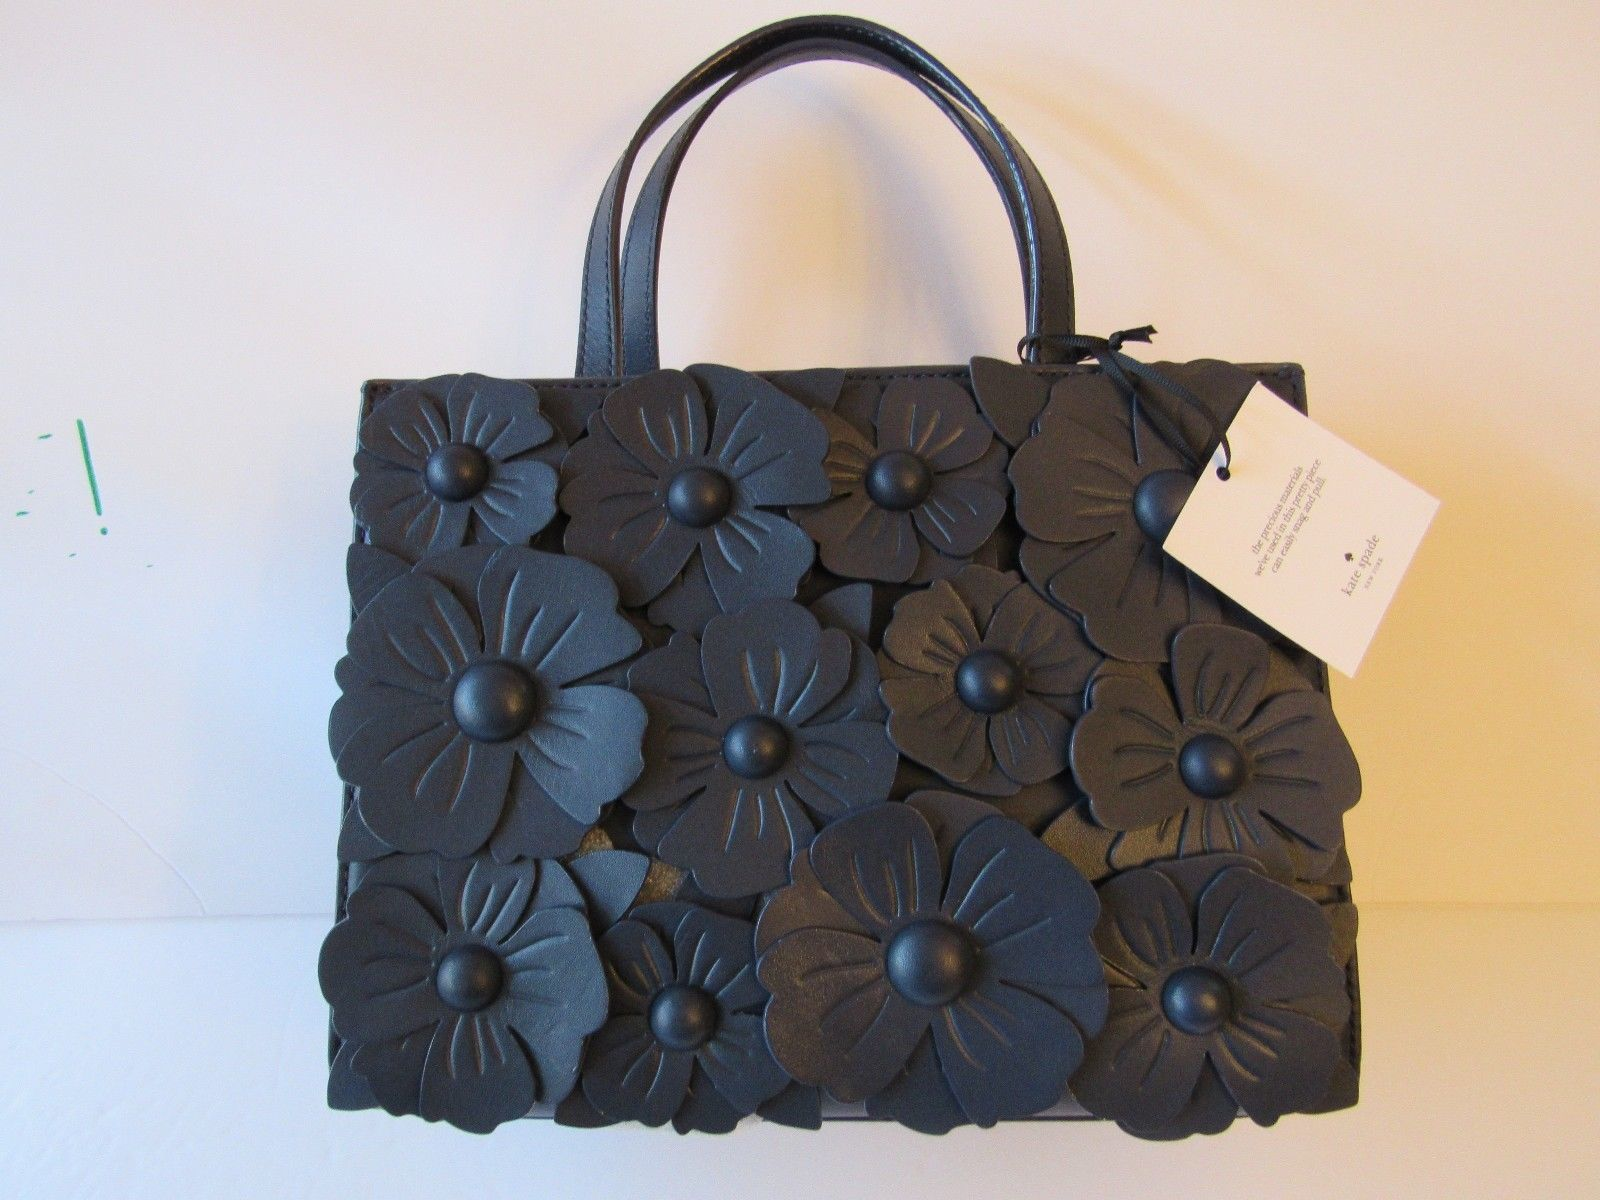 Primary image for Kate Spade Madison DAISY LANE Sam Leather Handbag Blazer Blue PXRU8739 SOLD OUT!